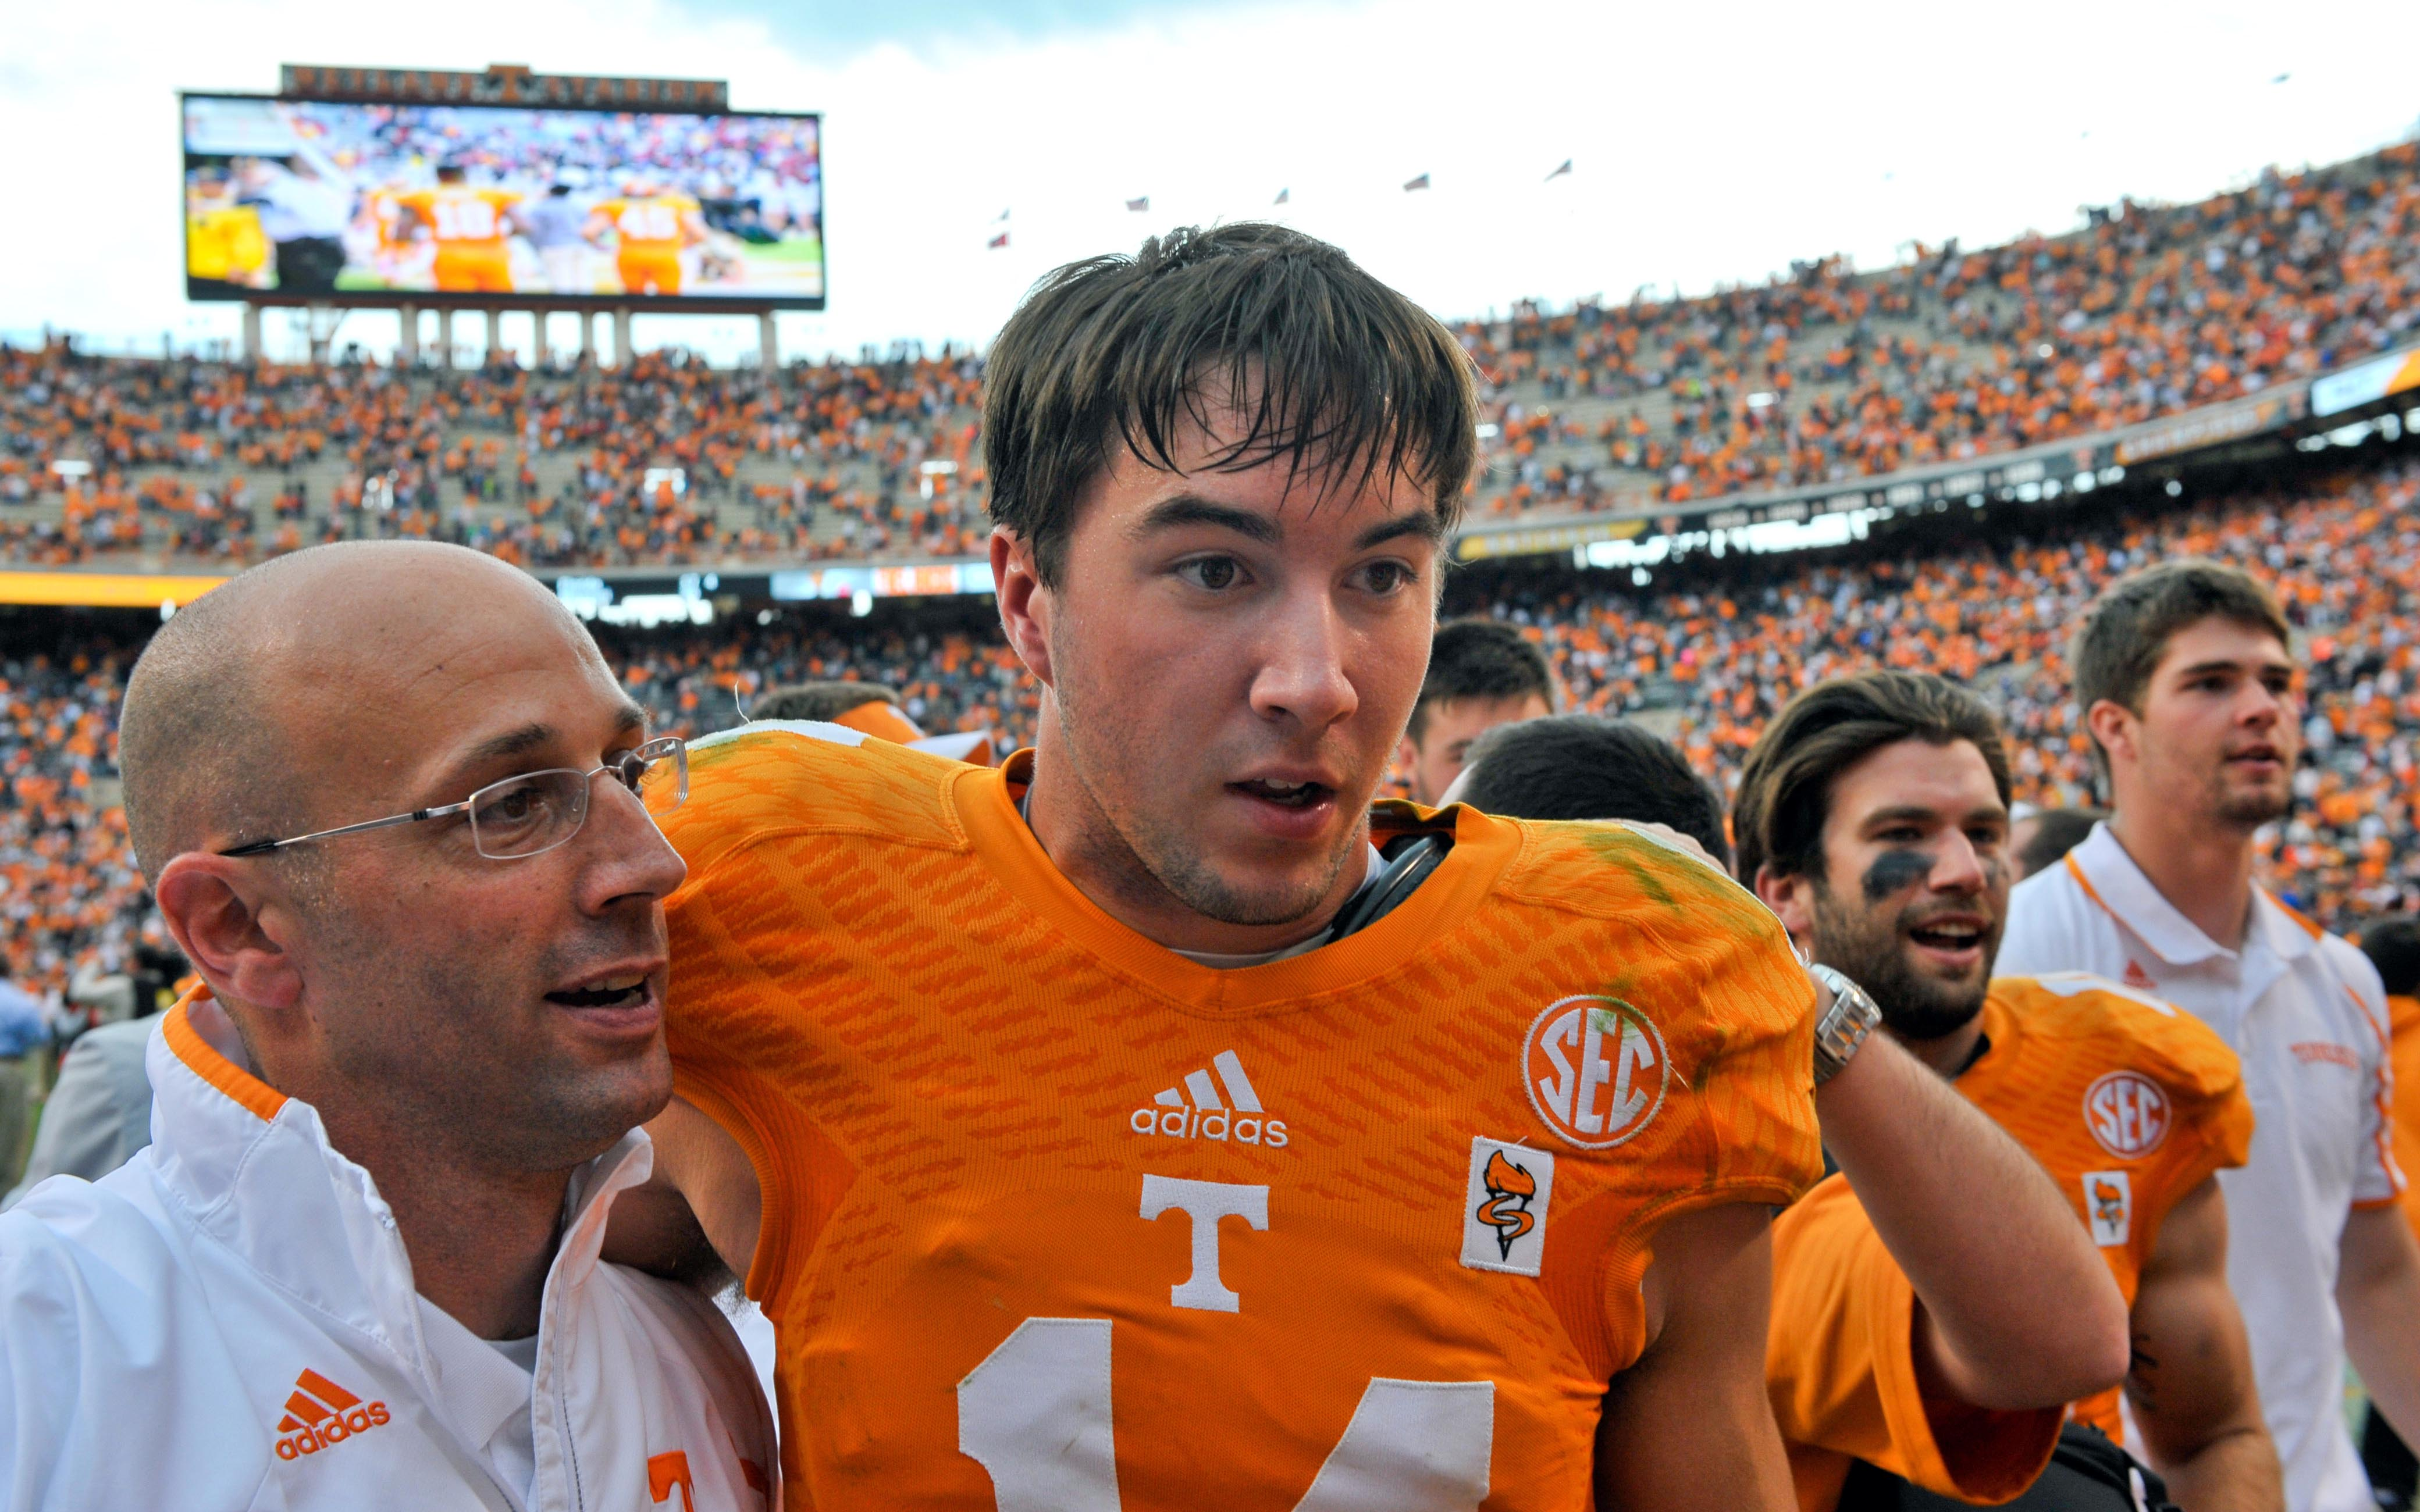 Oct 19, 2013; Knoxville, TN, USA; Tennessee Volunteers offensive coordinator Mike Bajakian congratulates Tennessee quarterback Justin Worley (14) after the game against the South Carolina Camecocks at Neyland Stadium. (Jim Brown-USA TODAY Sports)